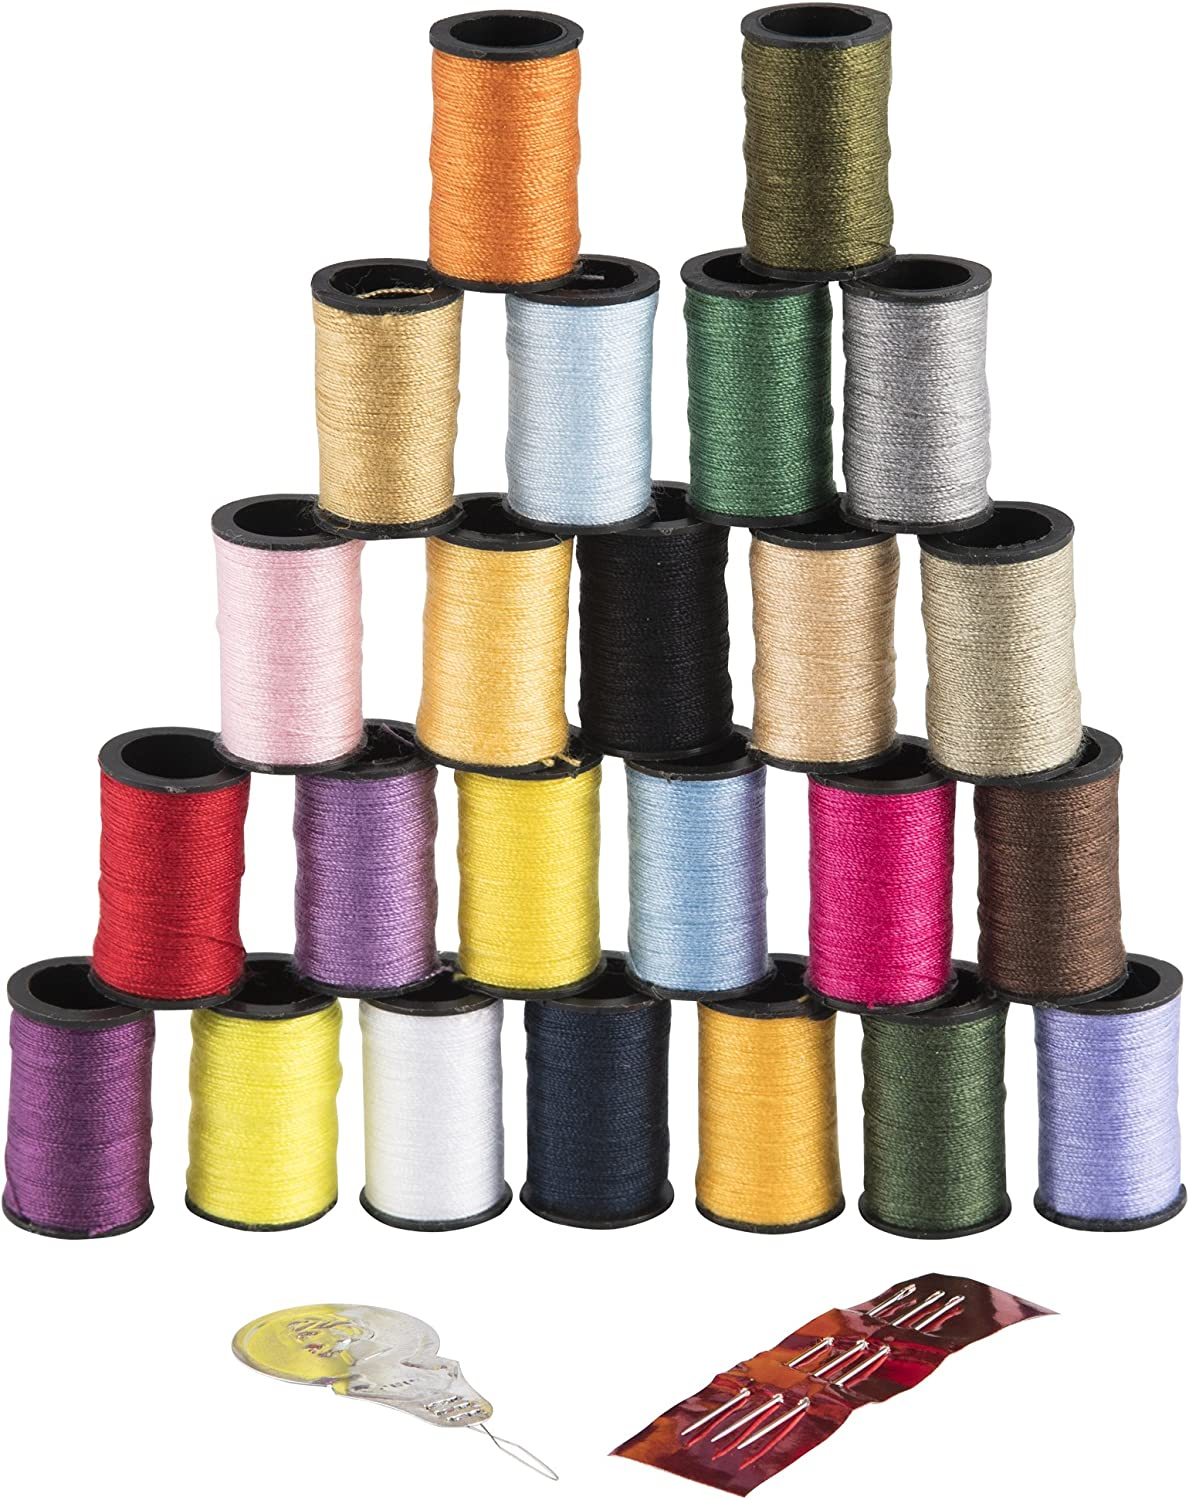 SINGER 00264 Polyester Hand Ranking TOP1 Sewing 24 M Colors Max 86% OFF Assorted Thread